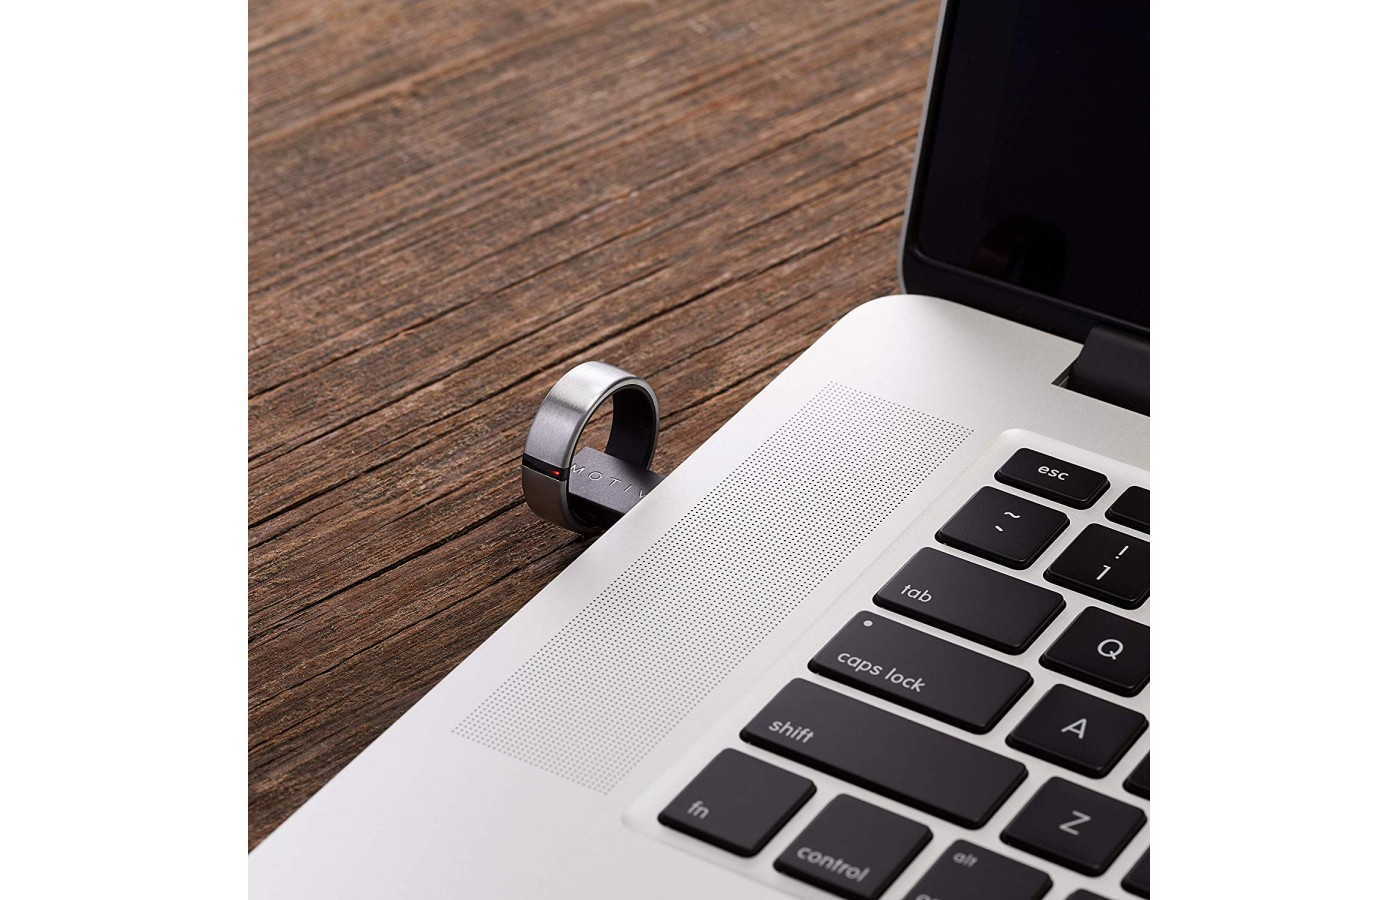 The charging dock, a simple USB port-compatible magnetic item, is smaller than some wireless mouse plug-ins and gives a full charge in under 90 minutes.